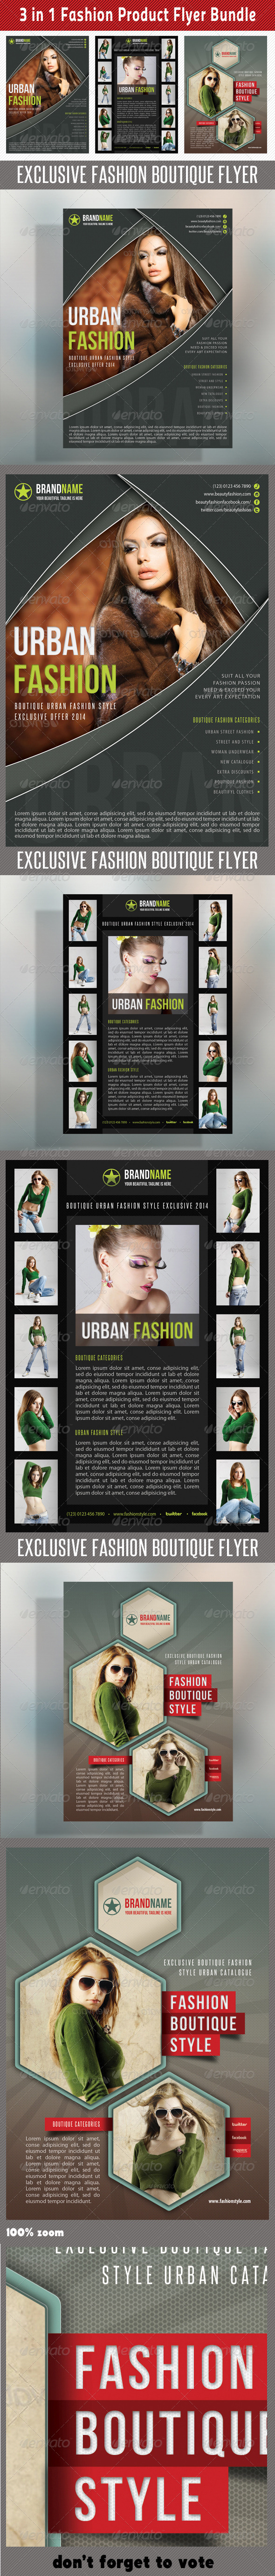 3 in 1 Fashion Product Flyer Bundle 12 - Commerce Flyers